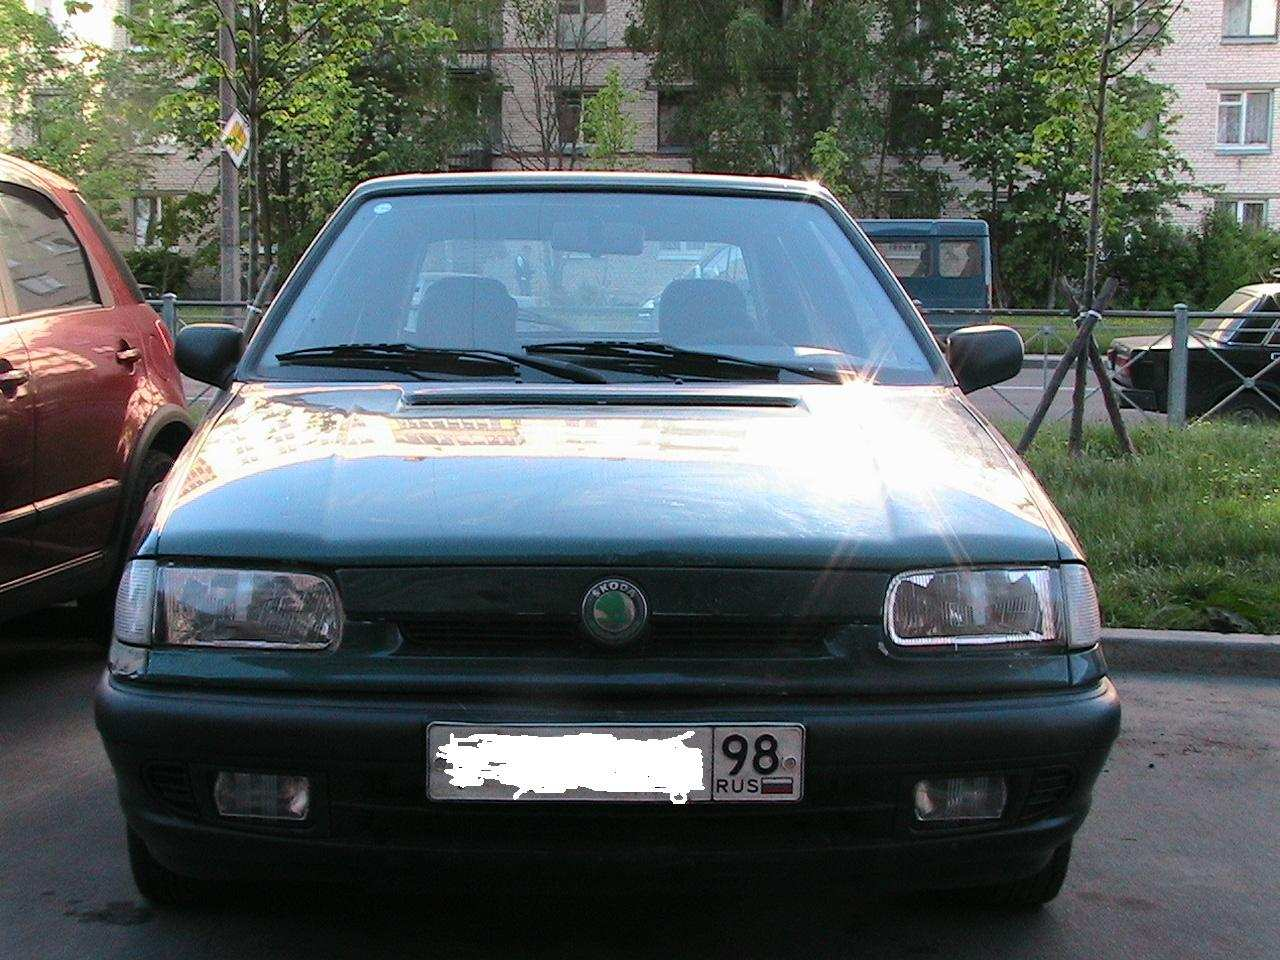 1997 Skoda Felicia Specs Engine Size 1 6l Fuel Type Gasoline Drive Wheels Ff Transmission Gearbox Manual